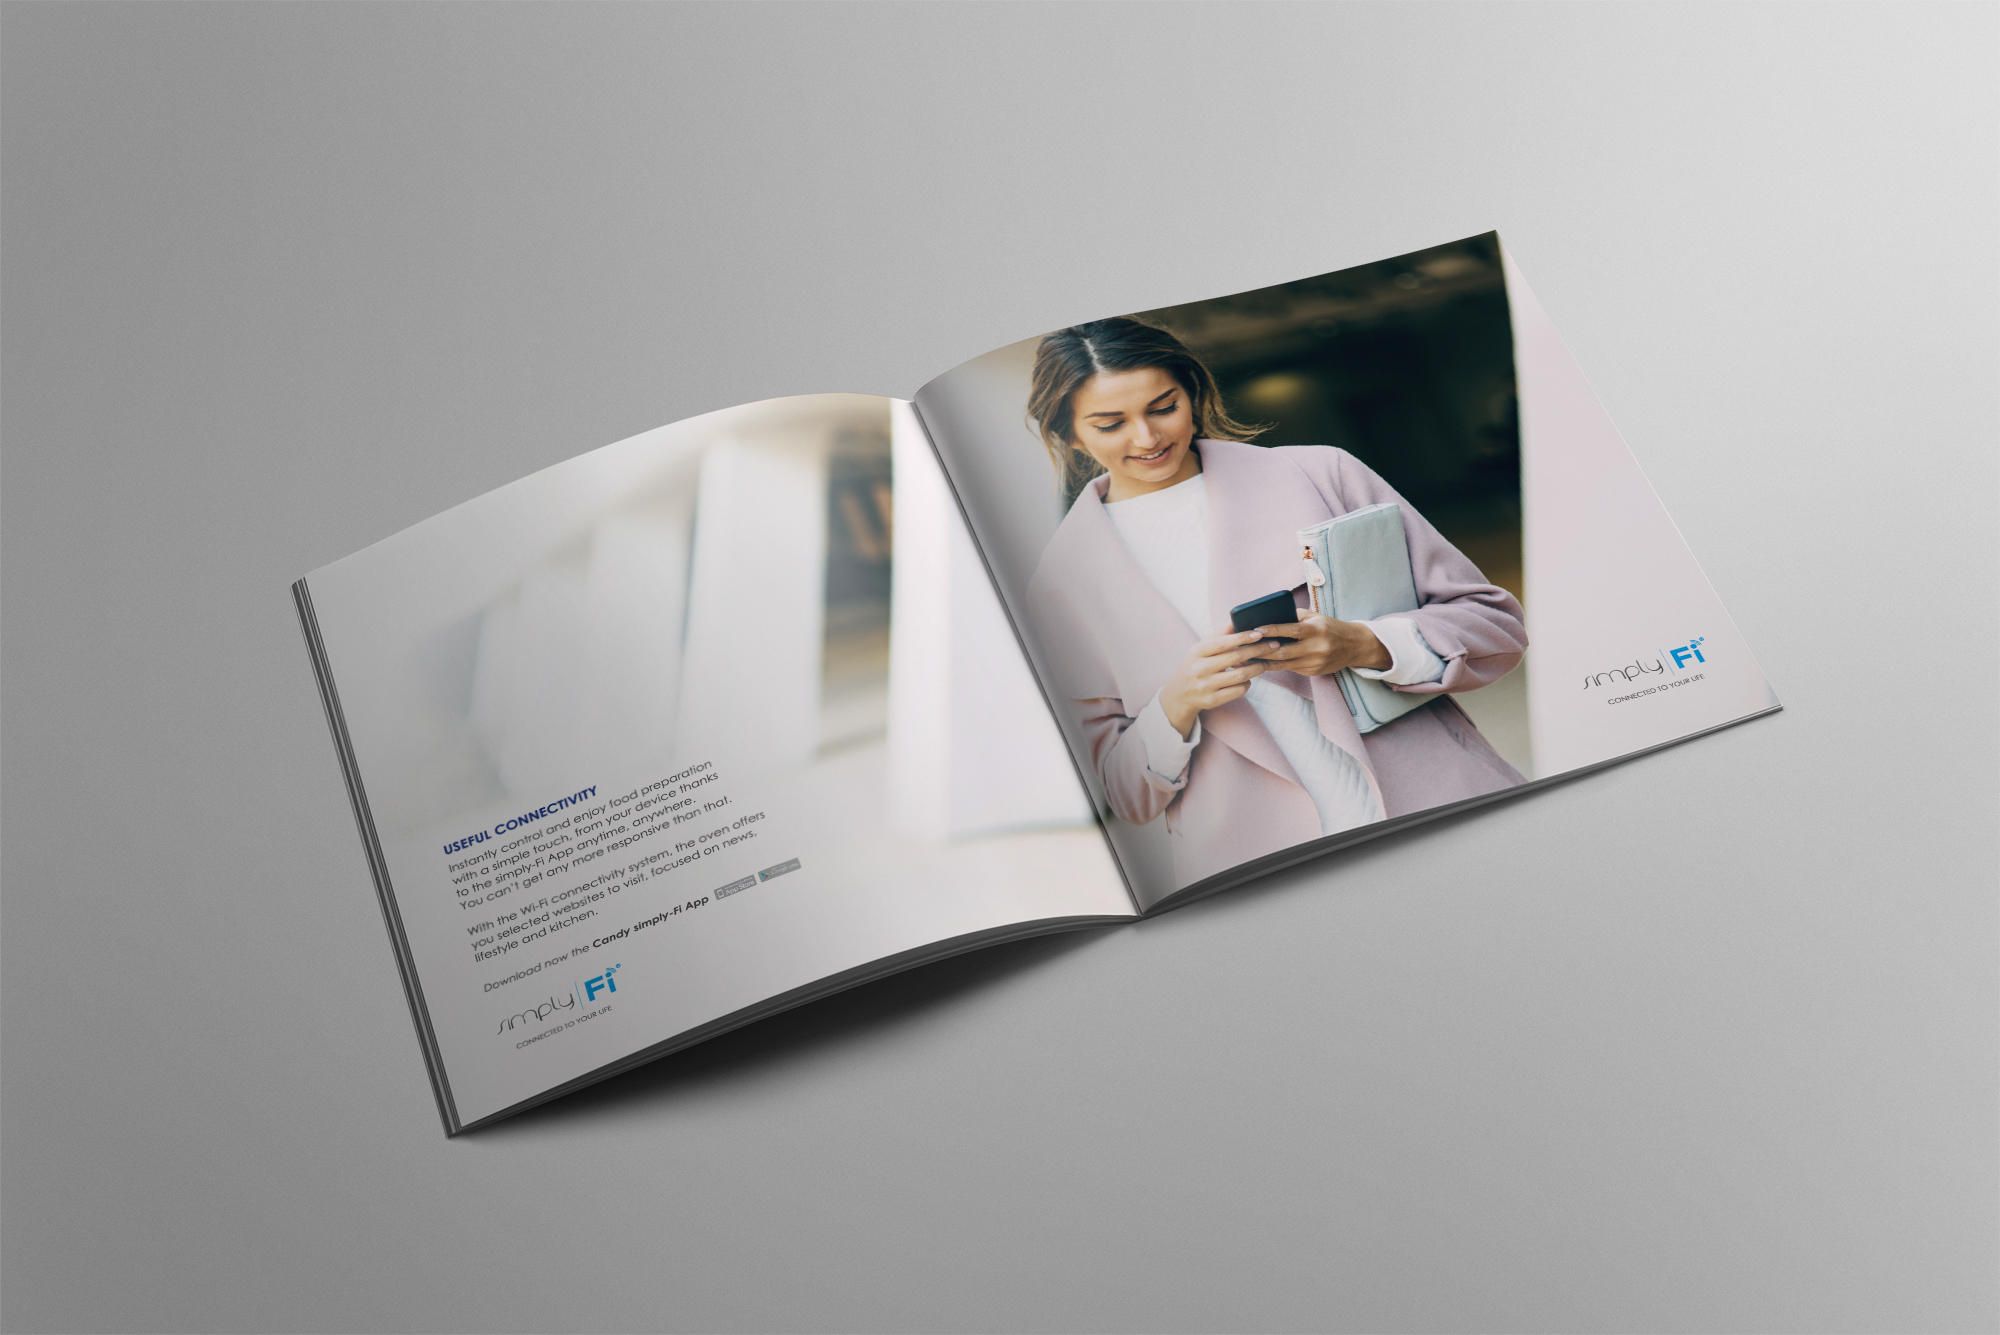 Brochure-Design-Advertising-Graphic-branding-online-marketing-illustration-poster-06